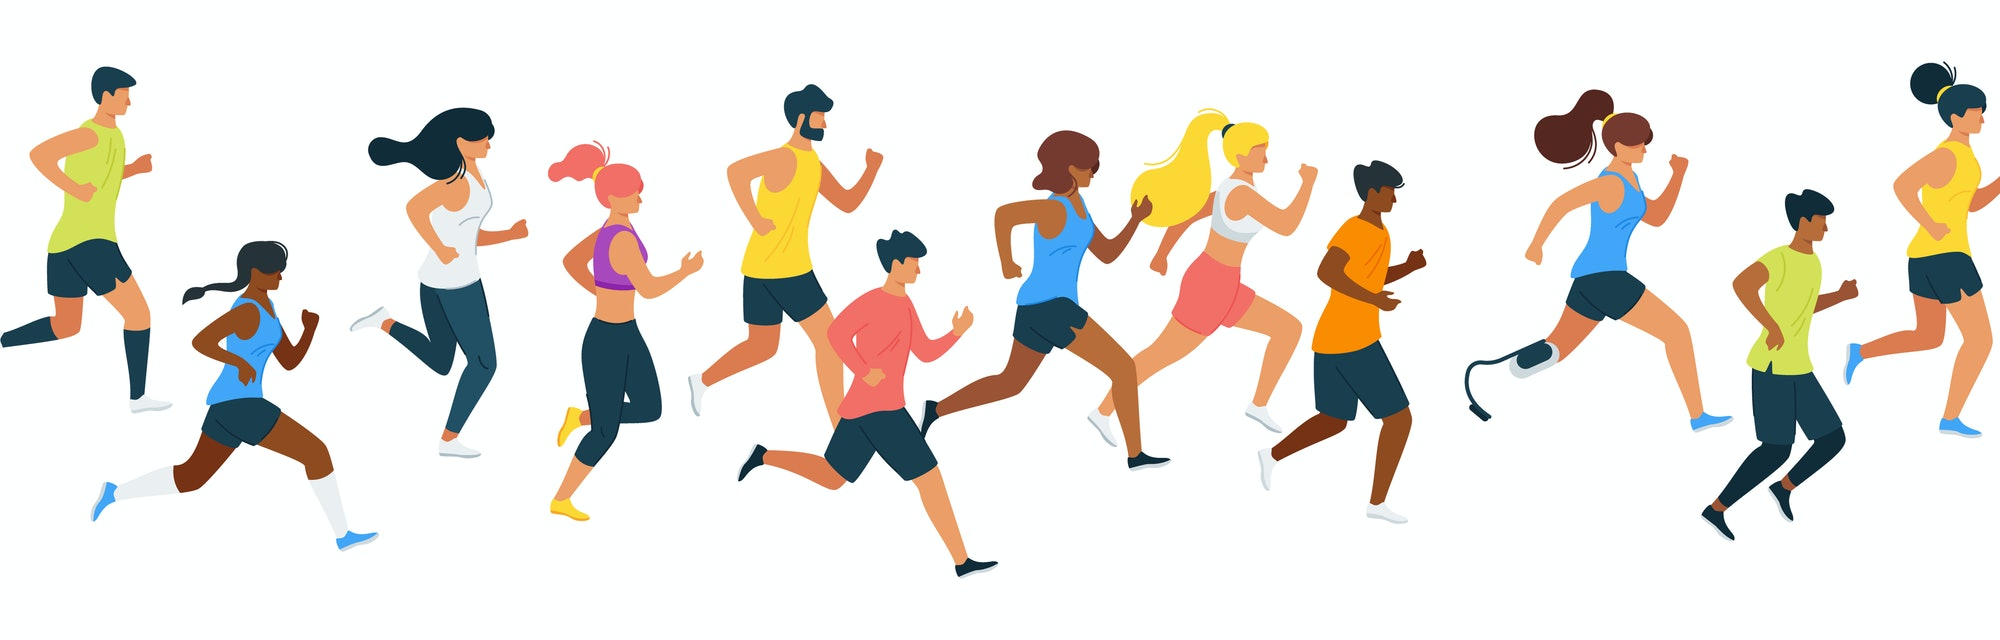 Running people flat vector illustration. Multiracial runners, athletes, sportive men and women cartoon characters. Marathon, exercise and athletics. Sport training isolated design element